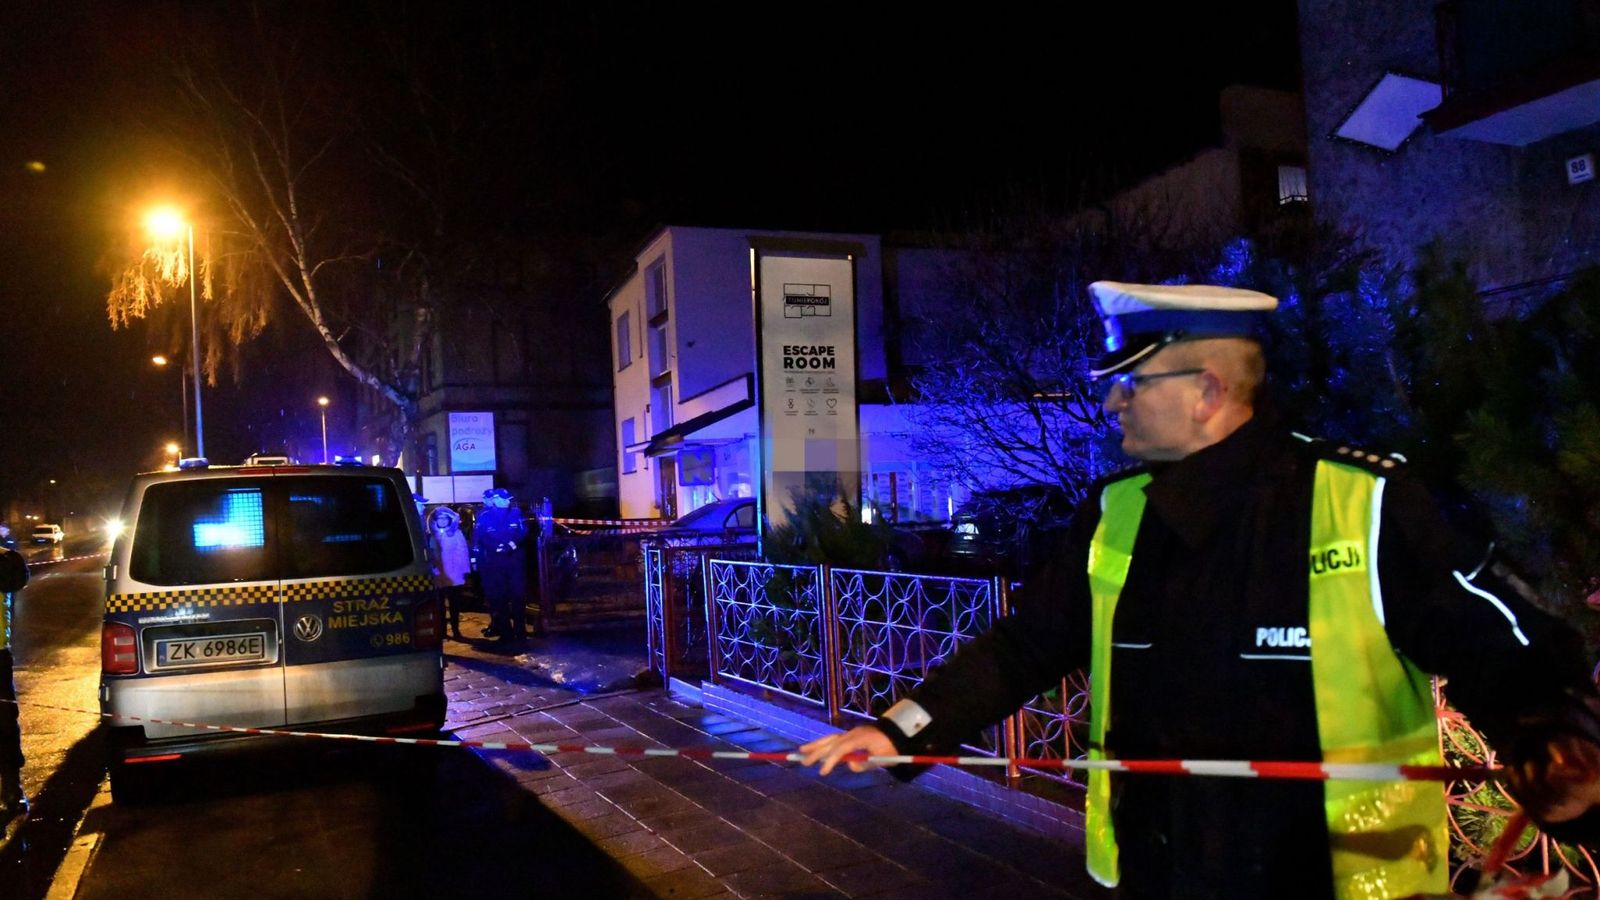 Man charged over escape room fire deaths